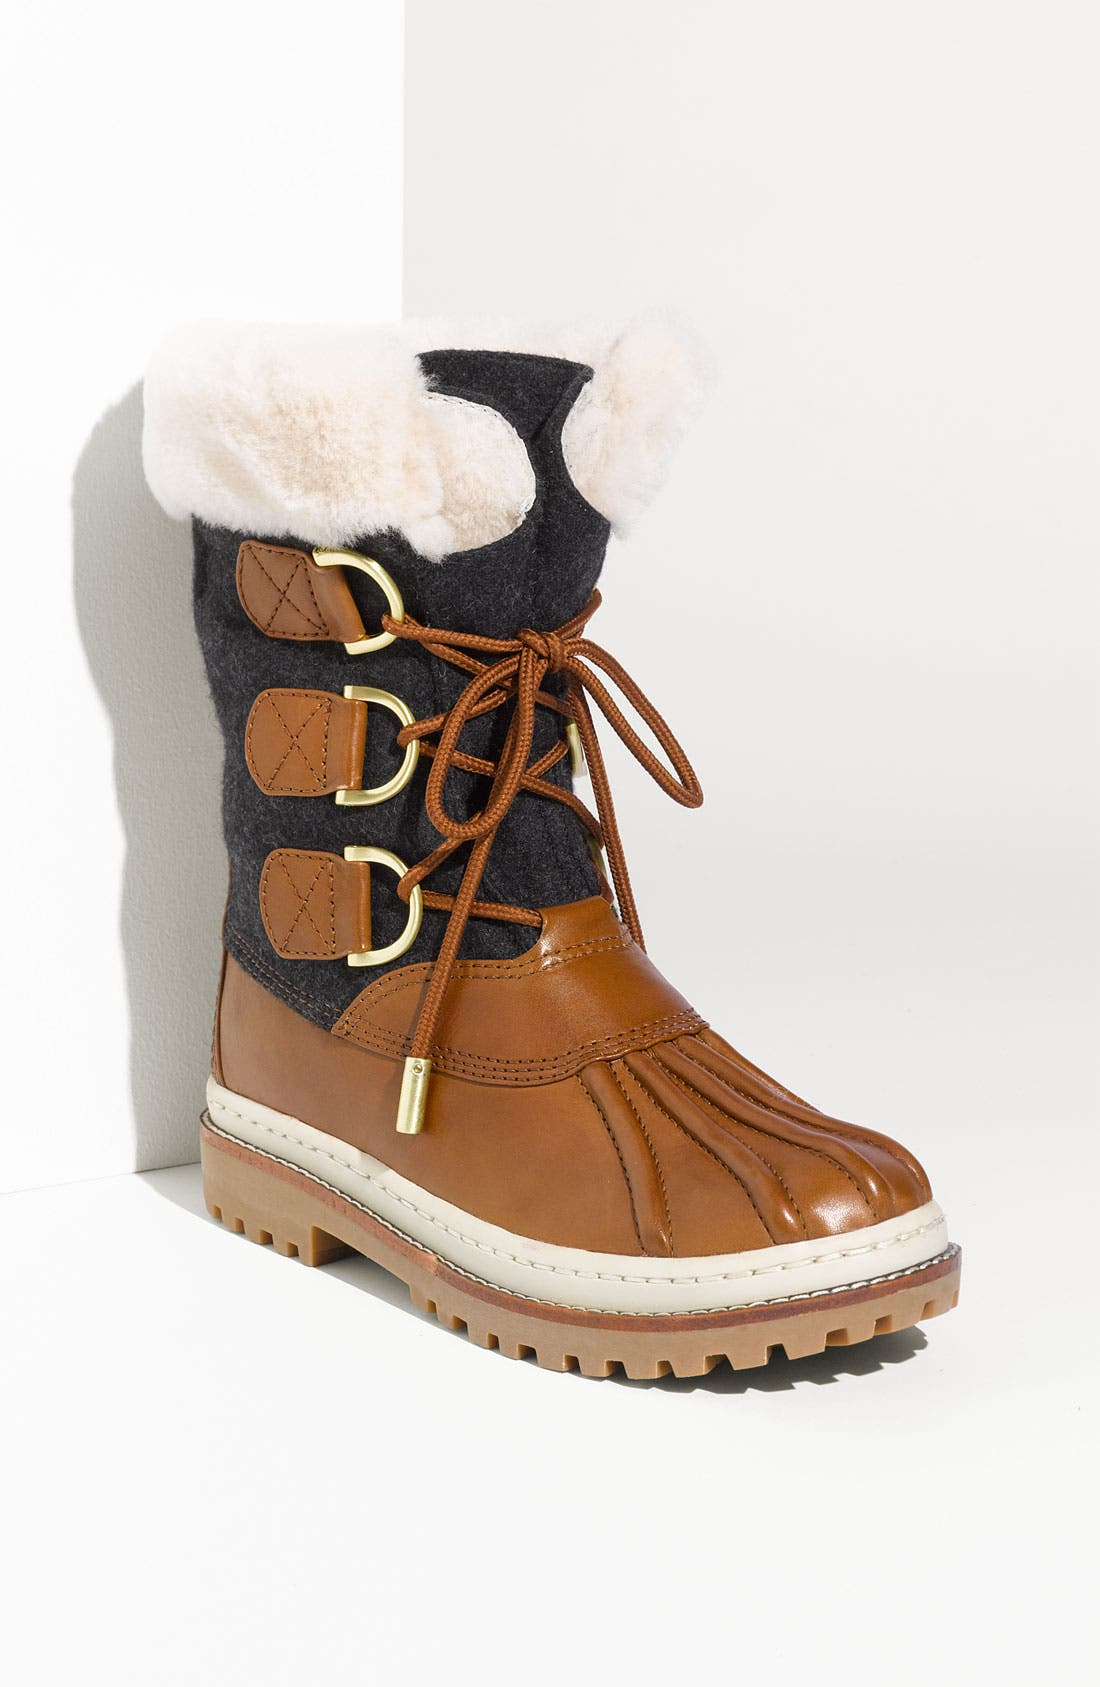 Alternate Image 1 Selected - Tory Burch Flannel & Leather Duck Boot